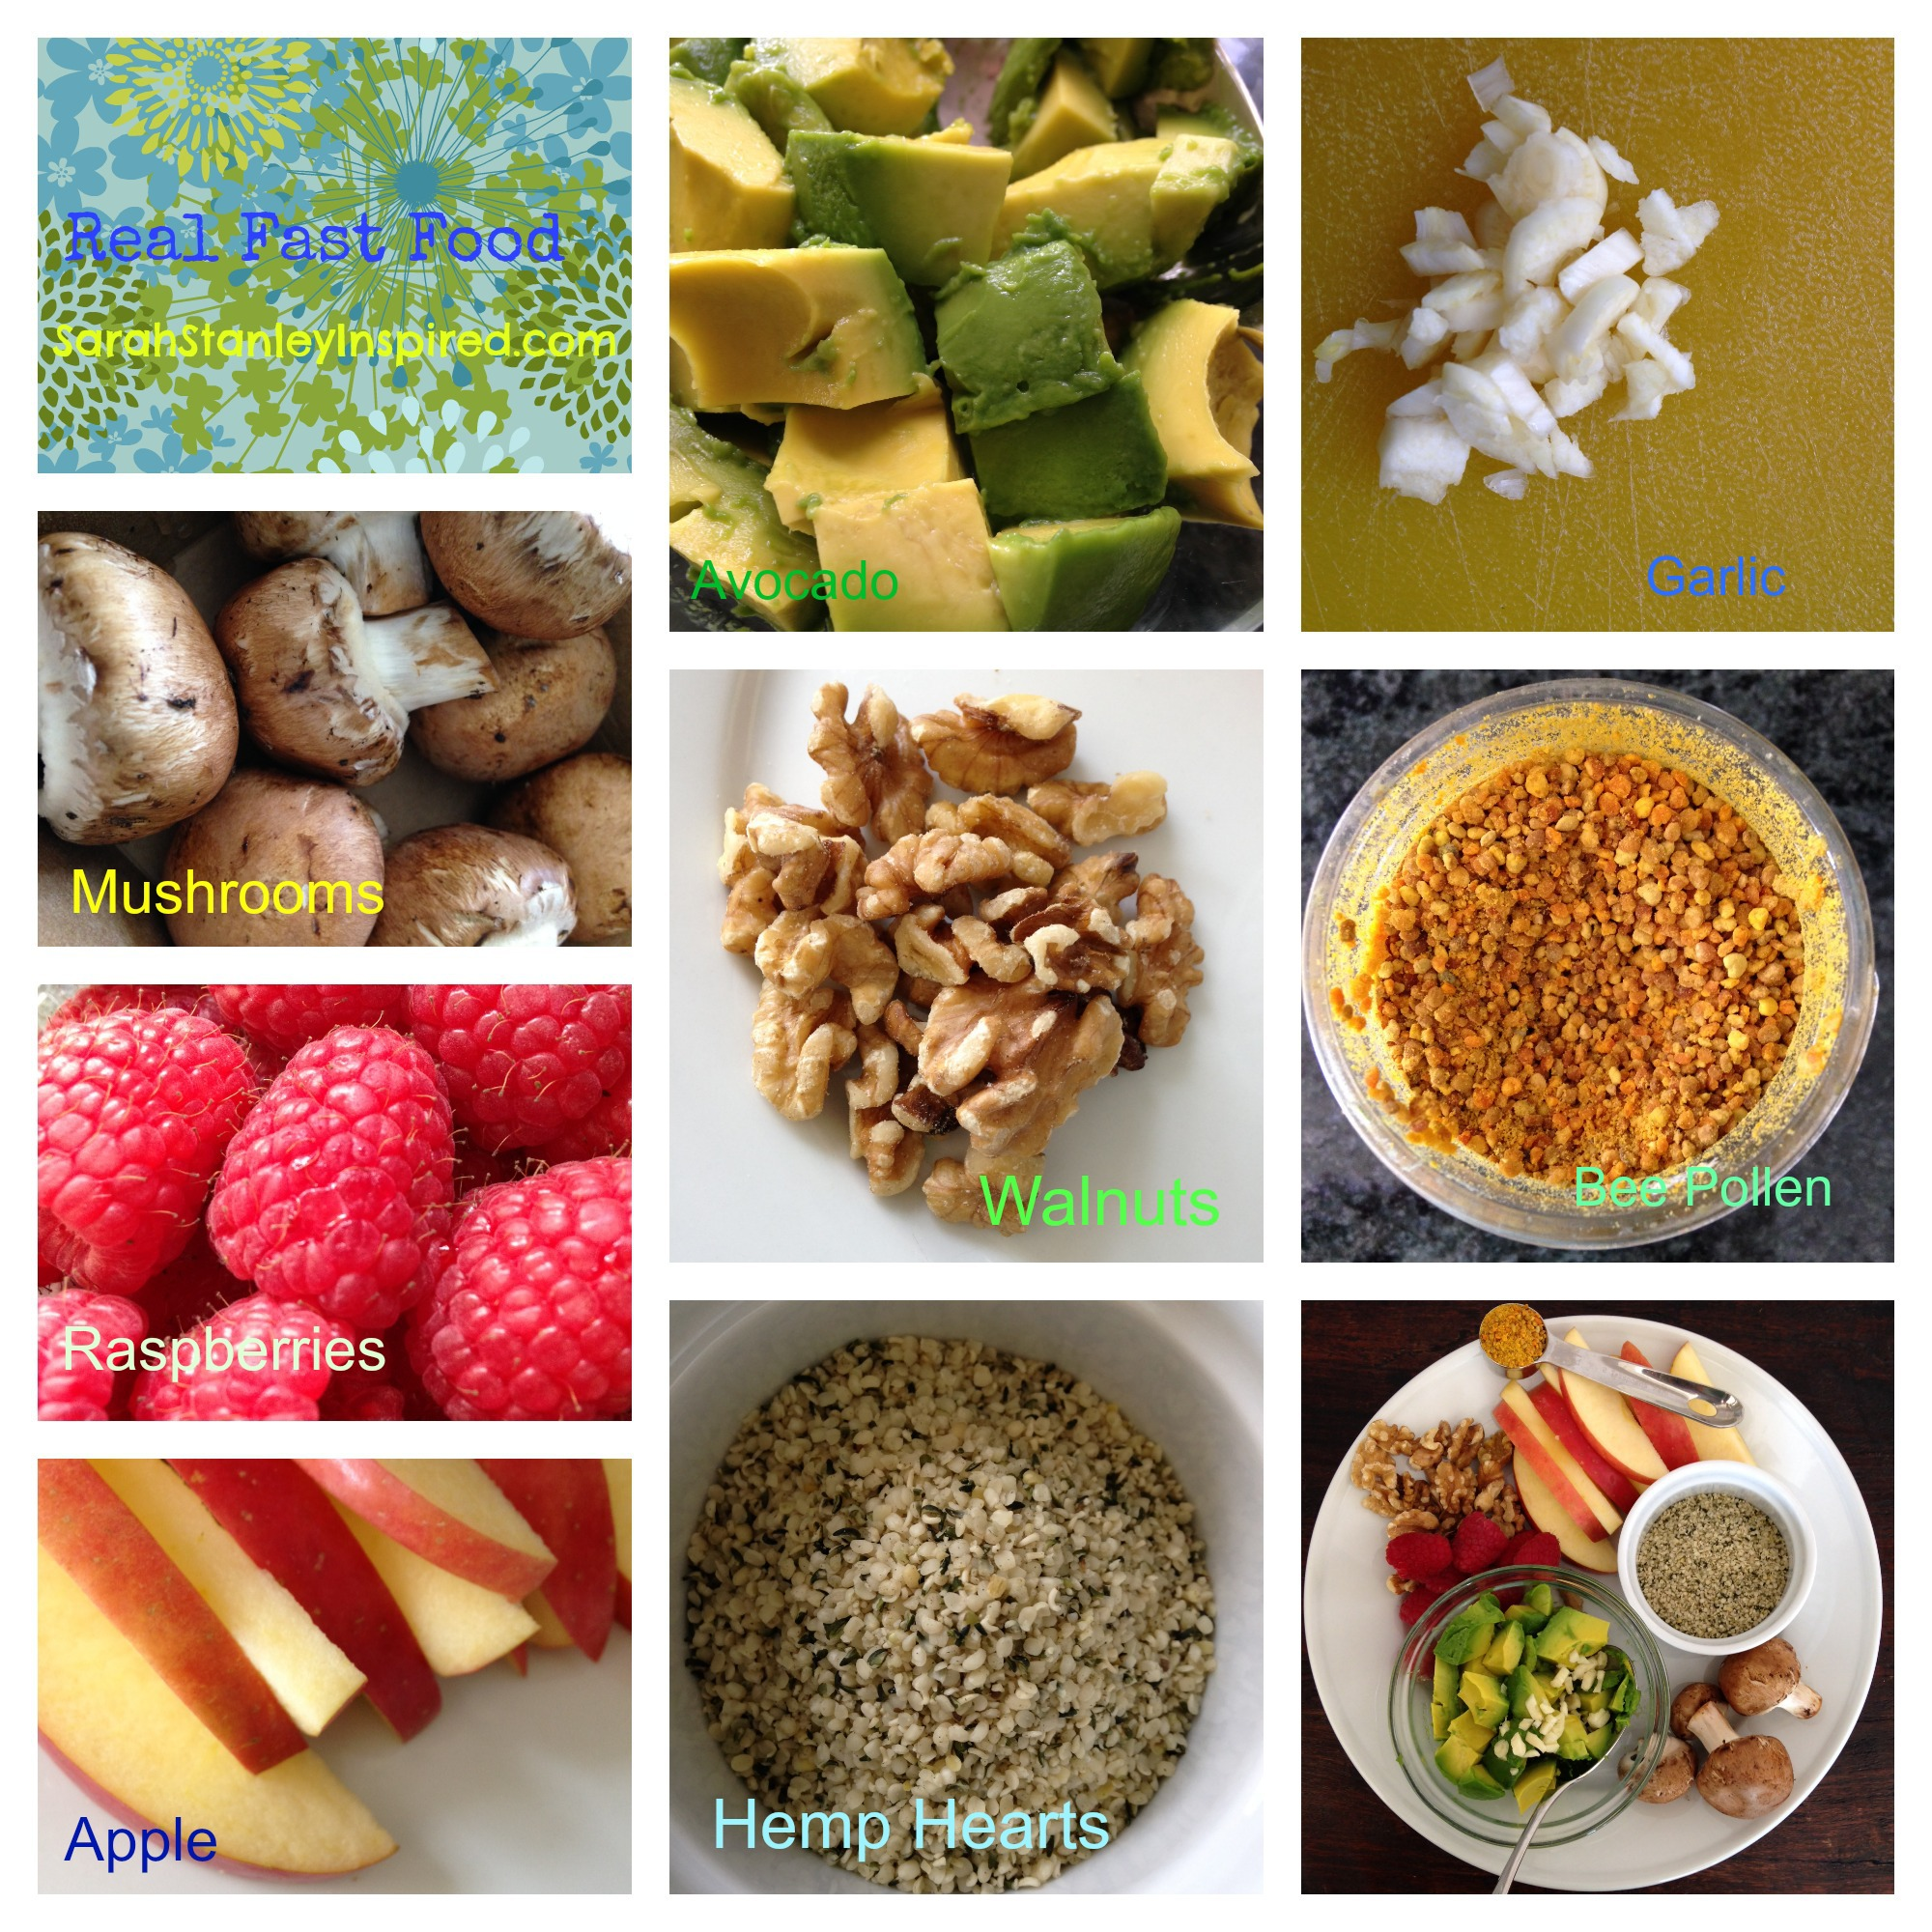 Real-food-collage-with-words.jpg